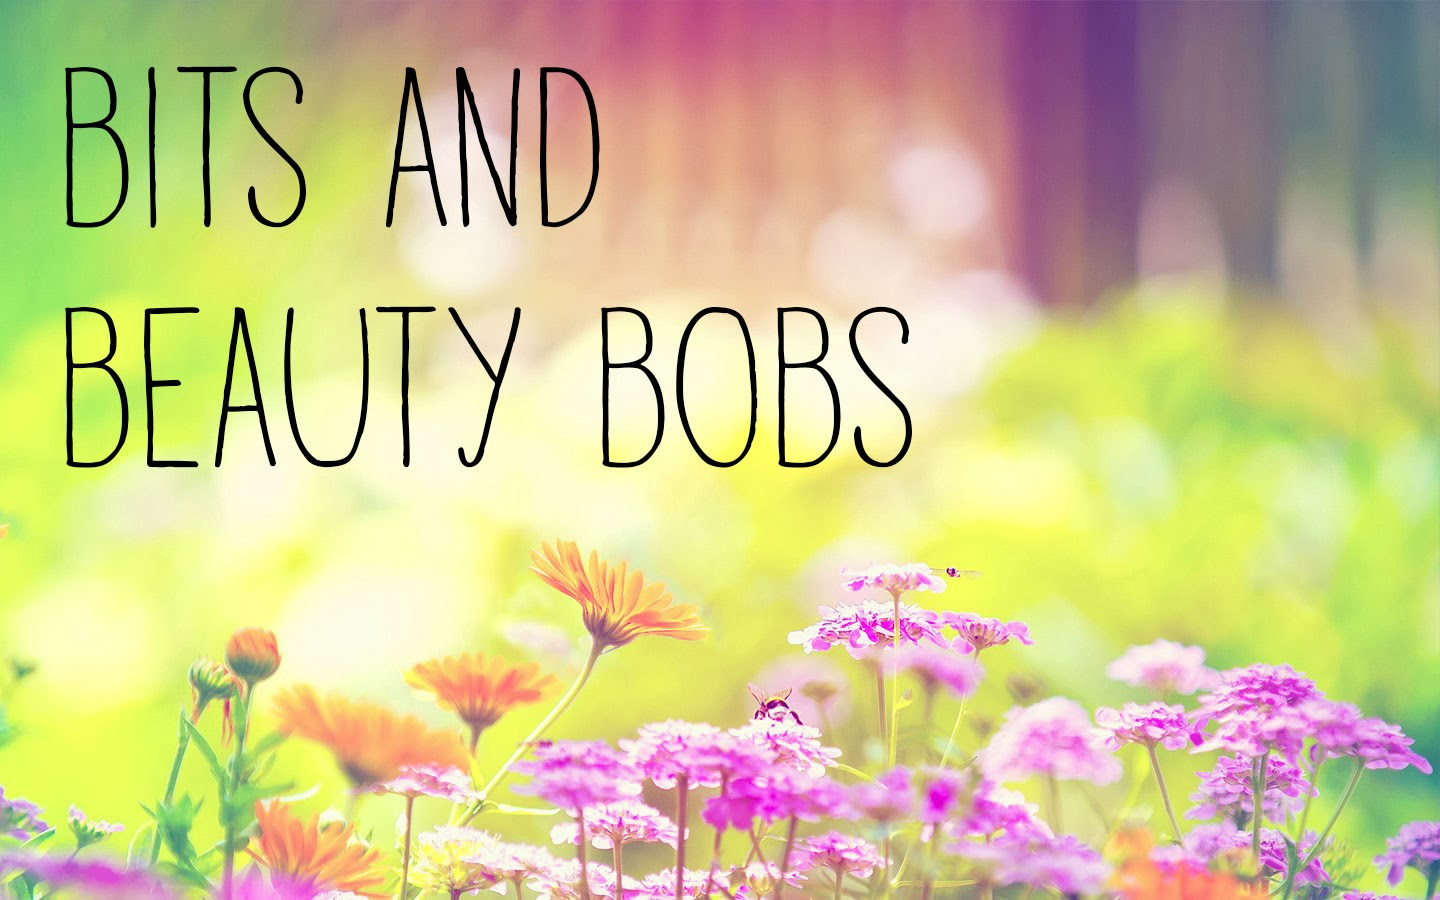 Bits and Beauty Bobs